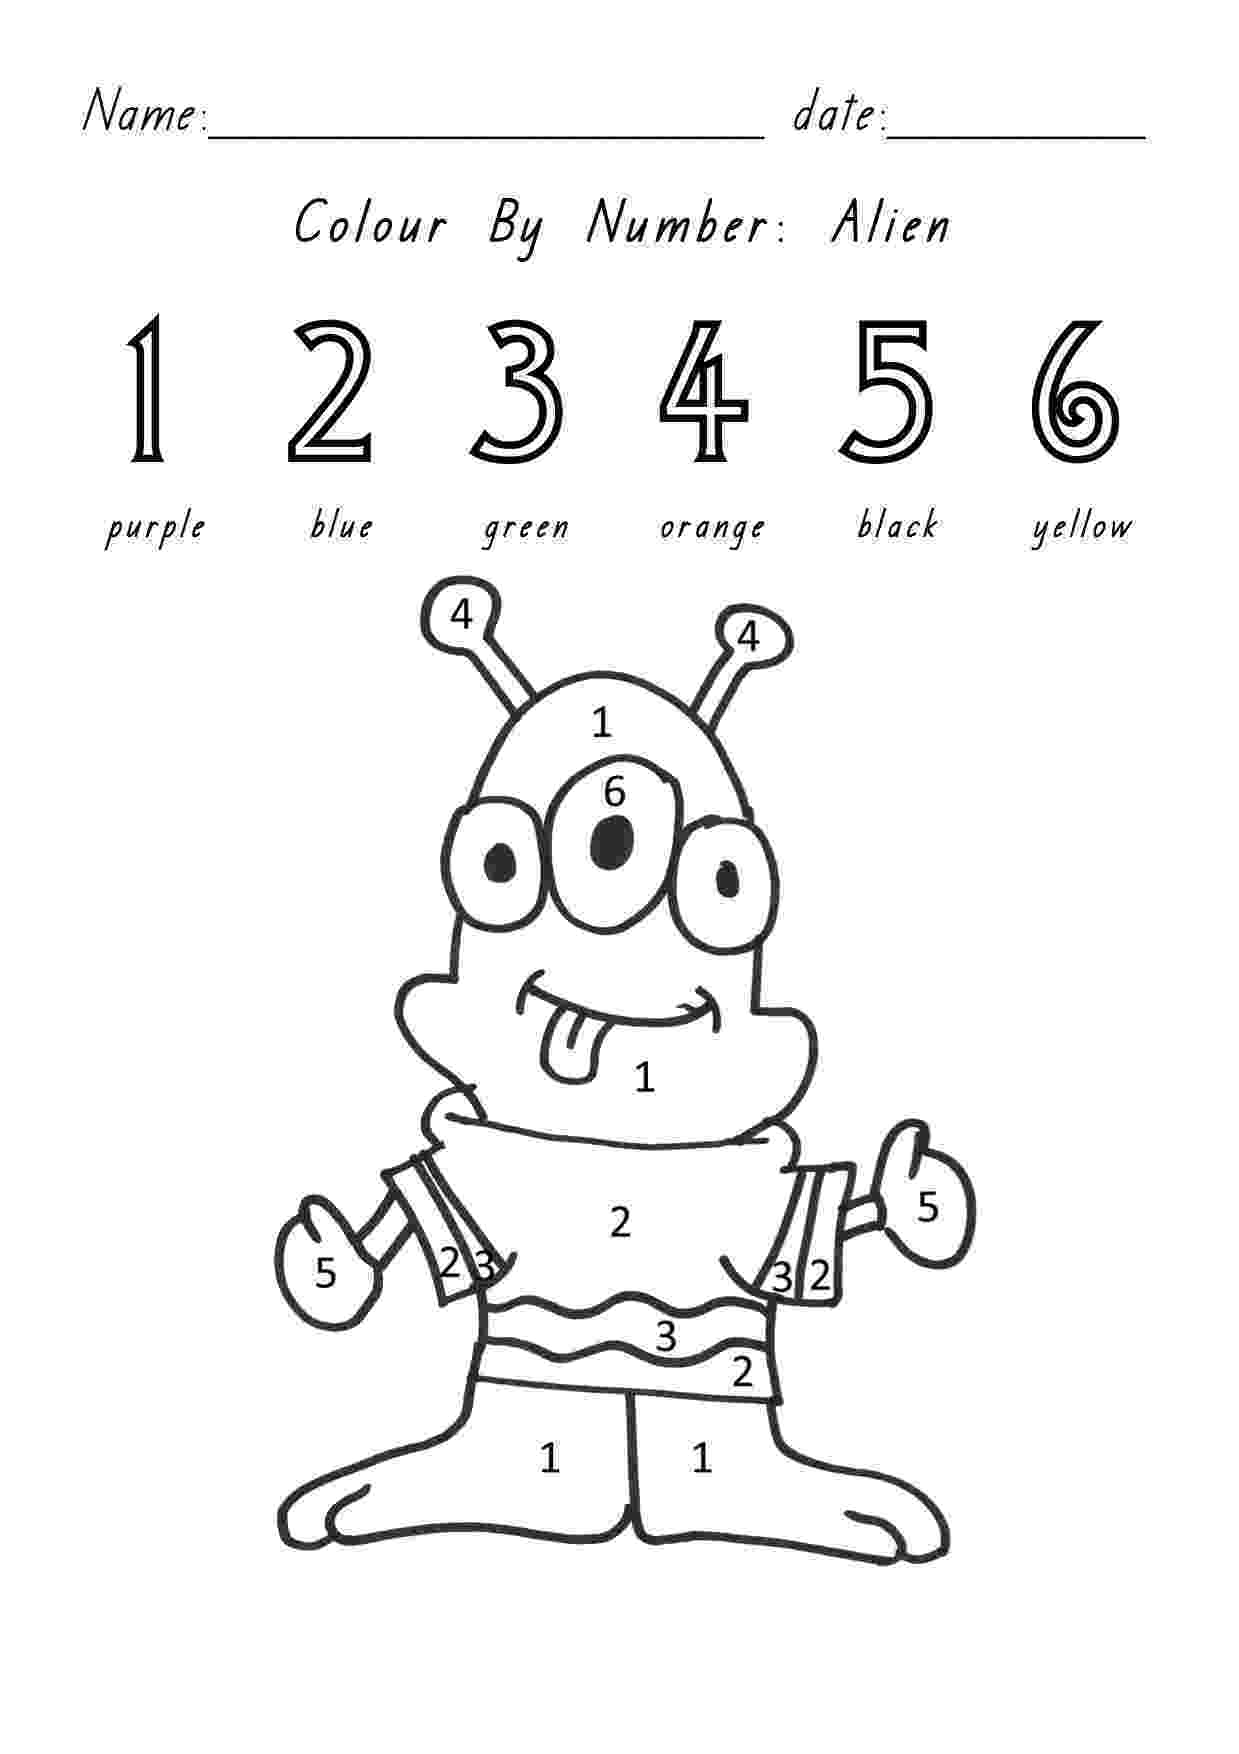 colour by number minibeasts early childhood art and colors worksheets minibeasts colour by number